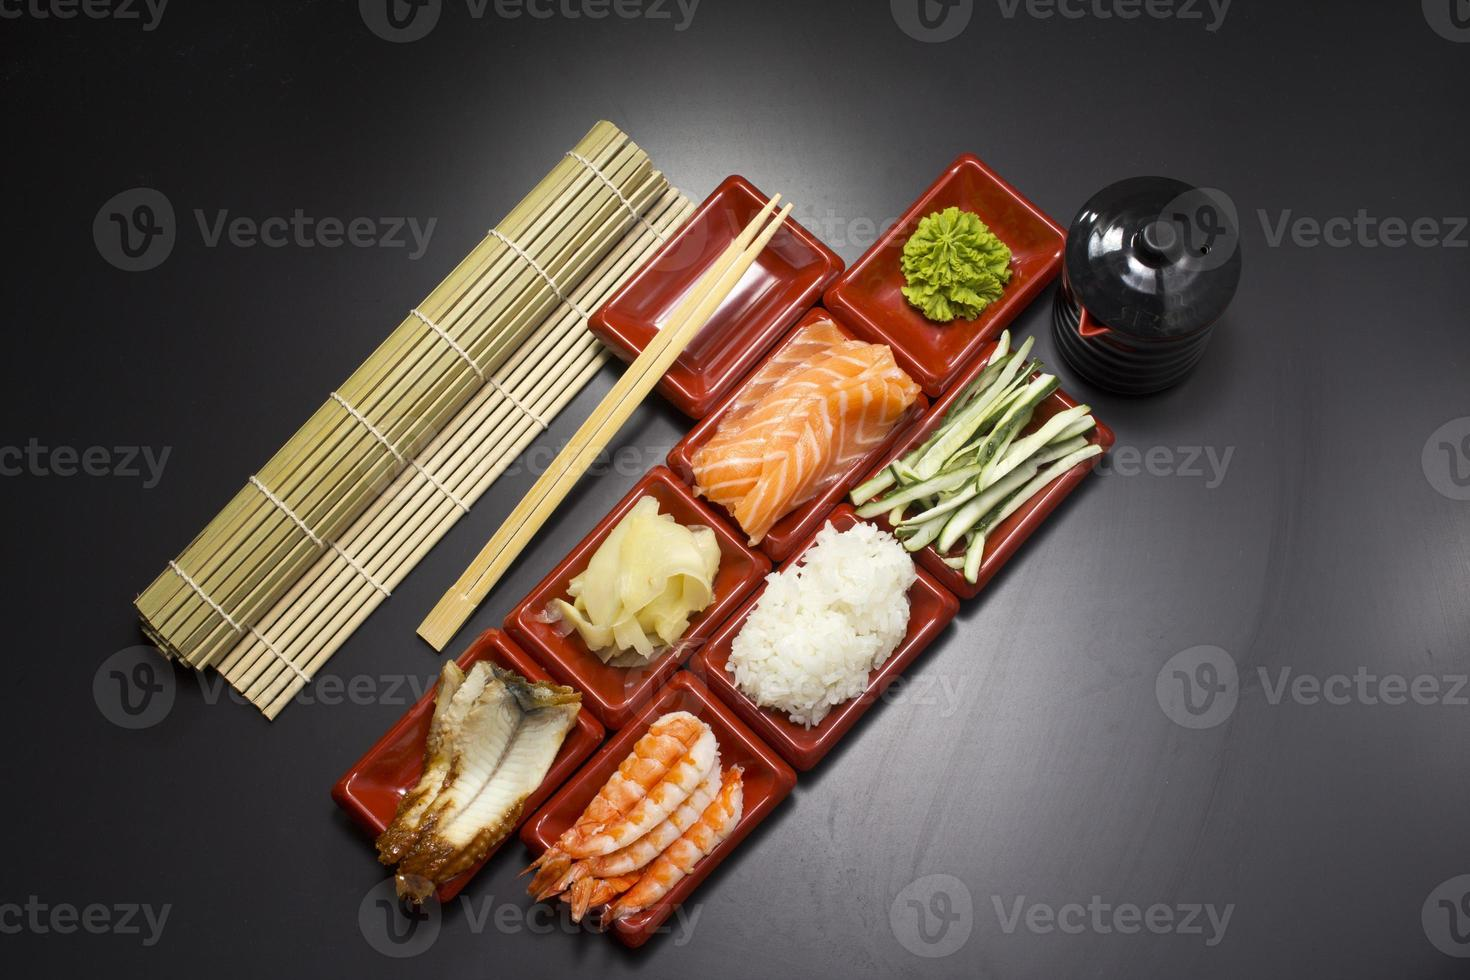 Ingredients for sushi: sliced salmon cucumber rice wasabi and ginger photo